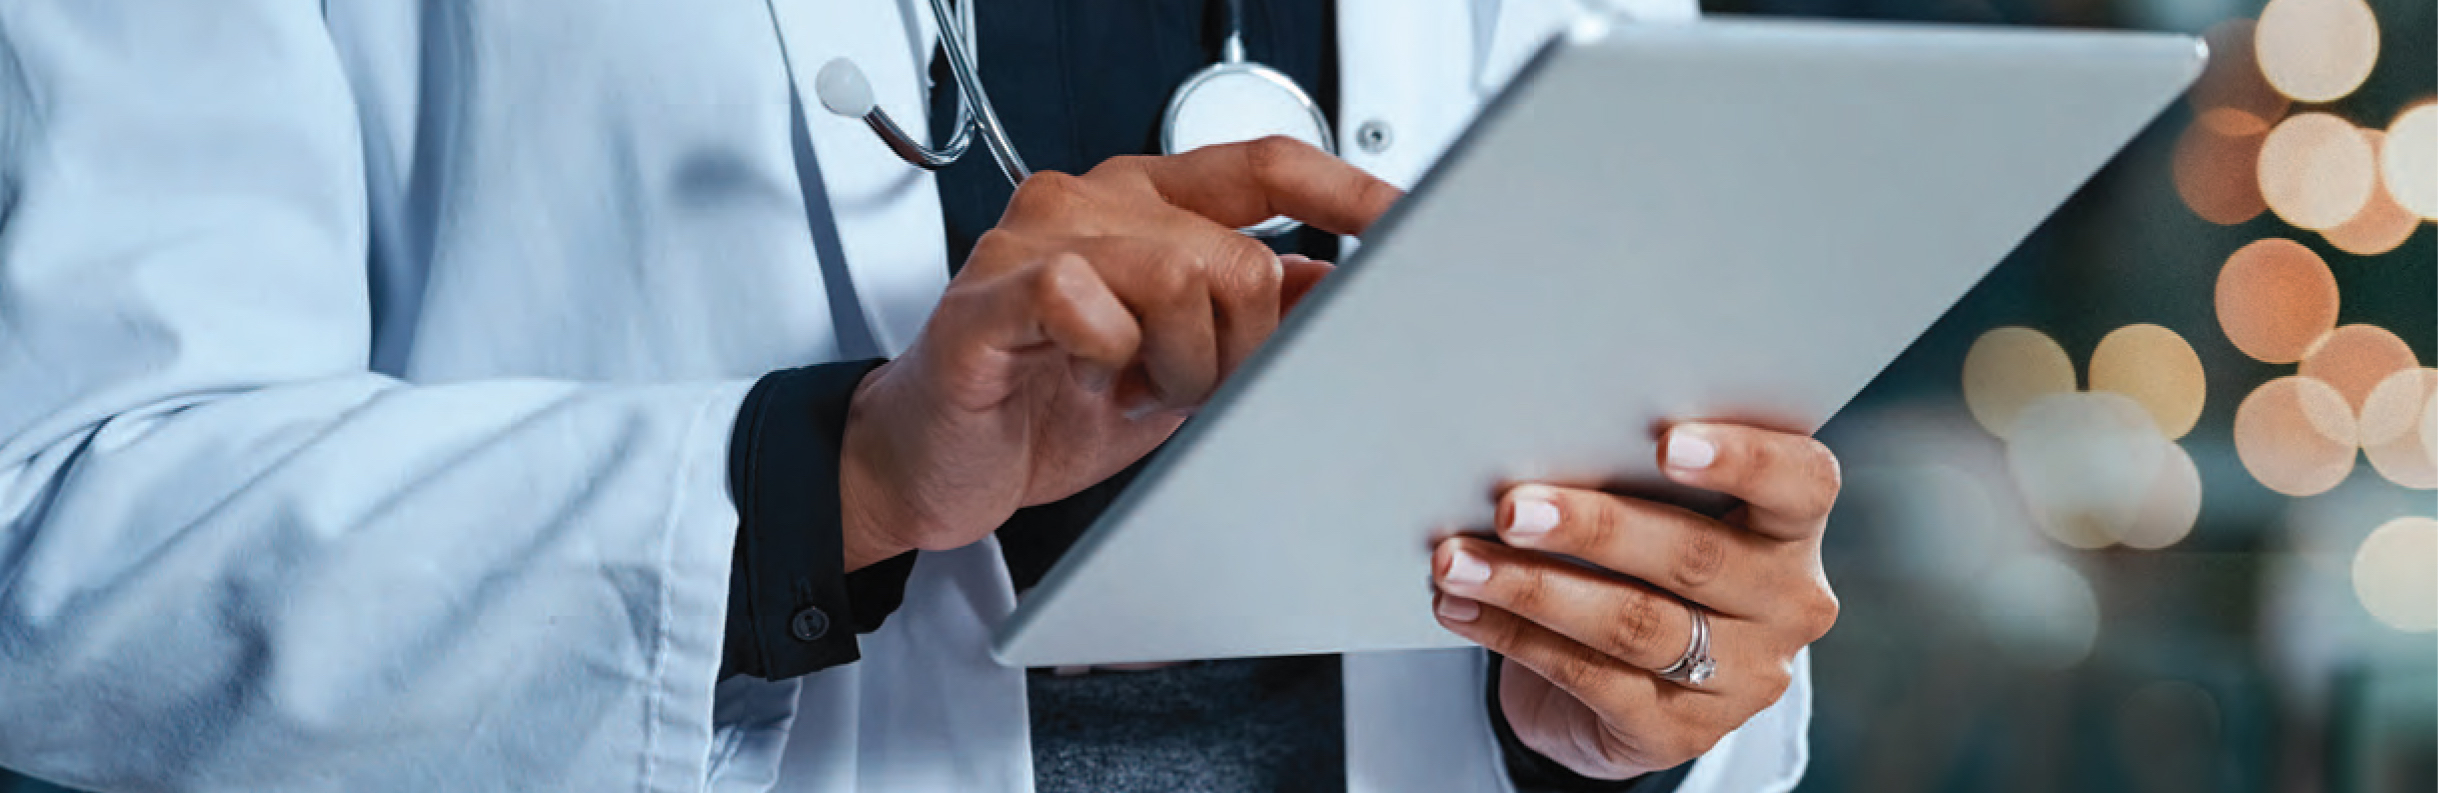 Understanding Electronic Medical Records - The CPA Journal